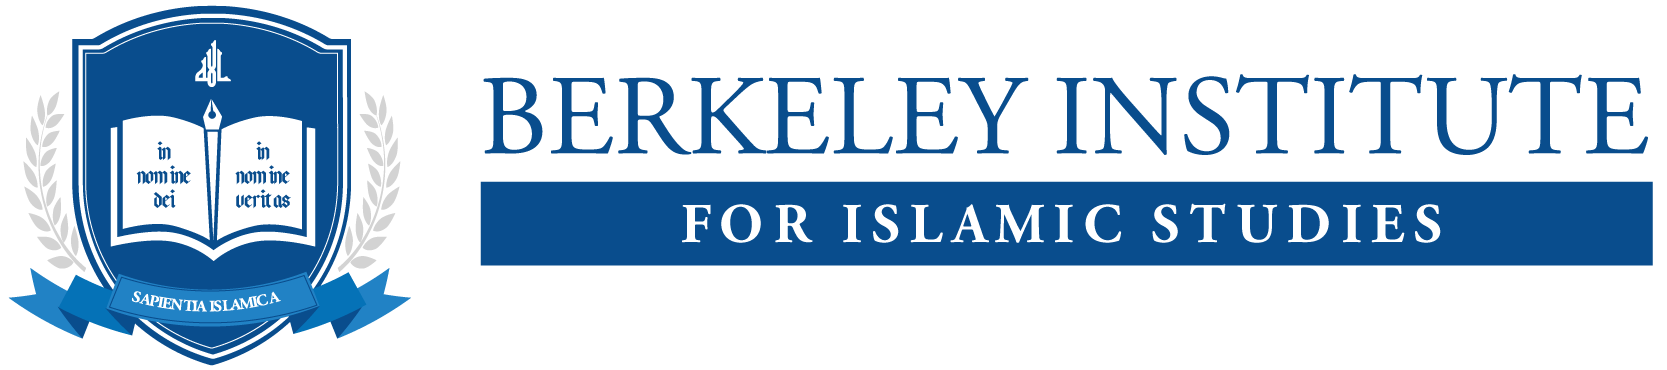 Berkeley Institute for Islamic Studies Logo